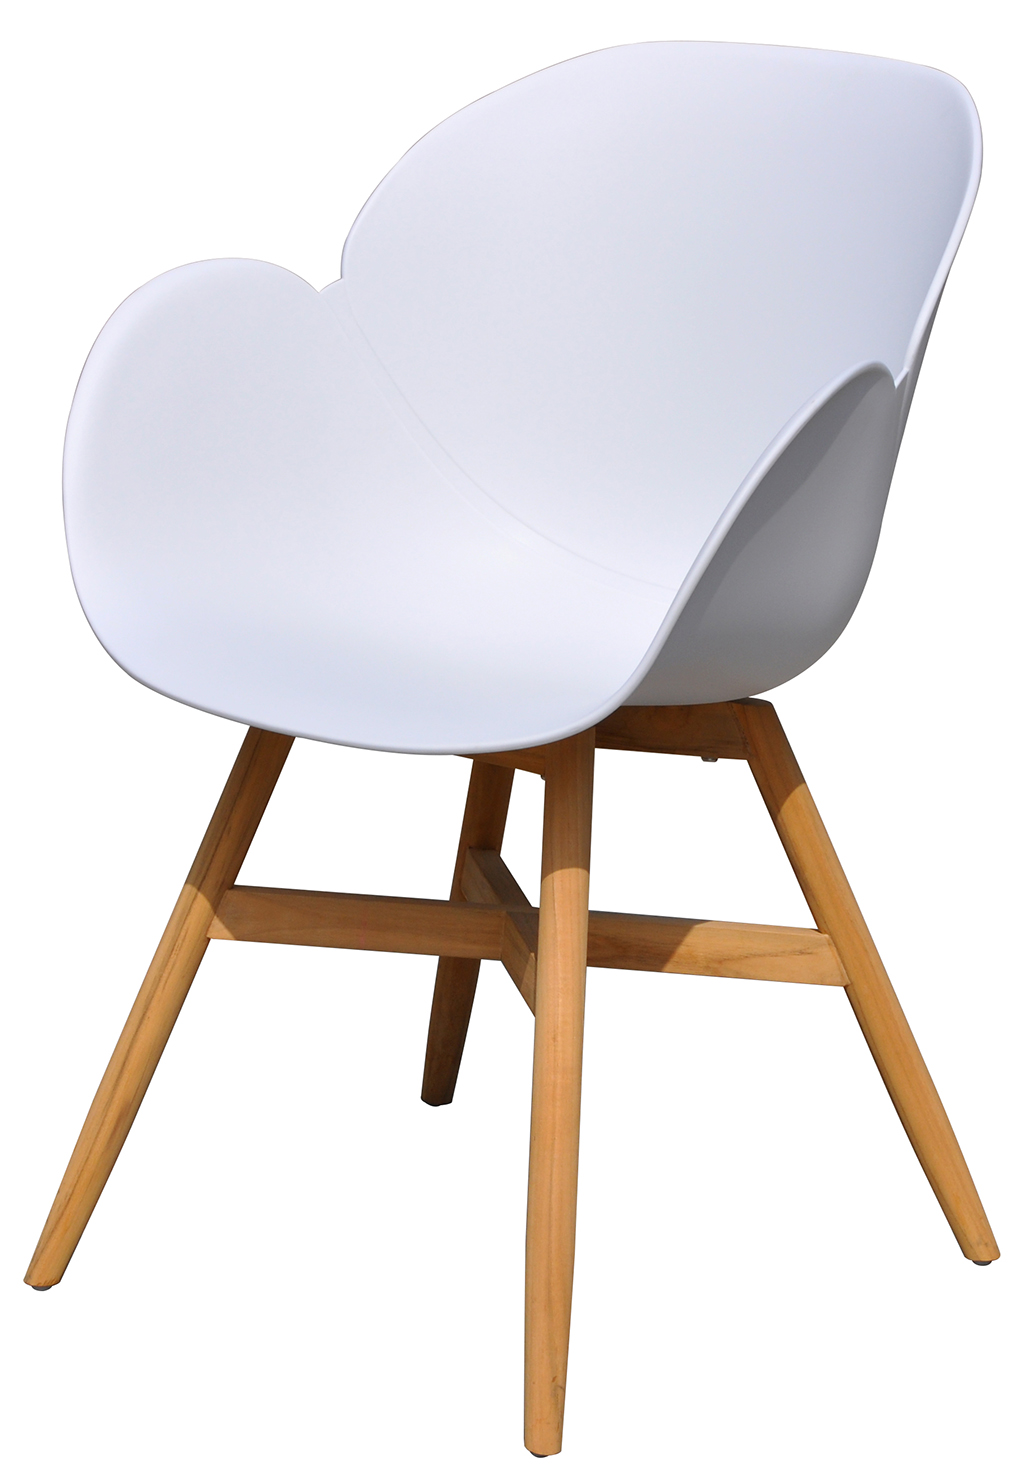 Kingston Casual Lotus Chairs